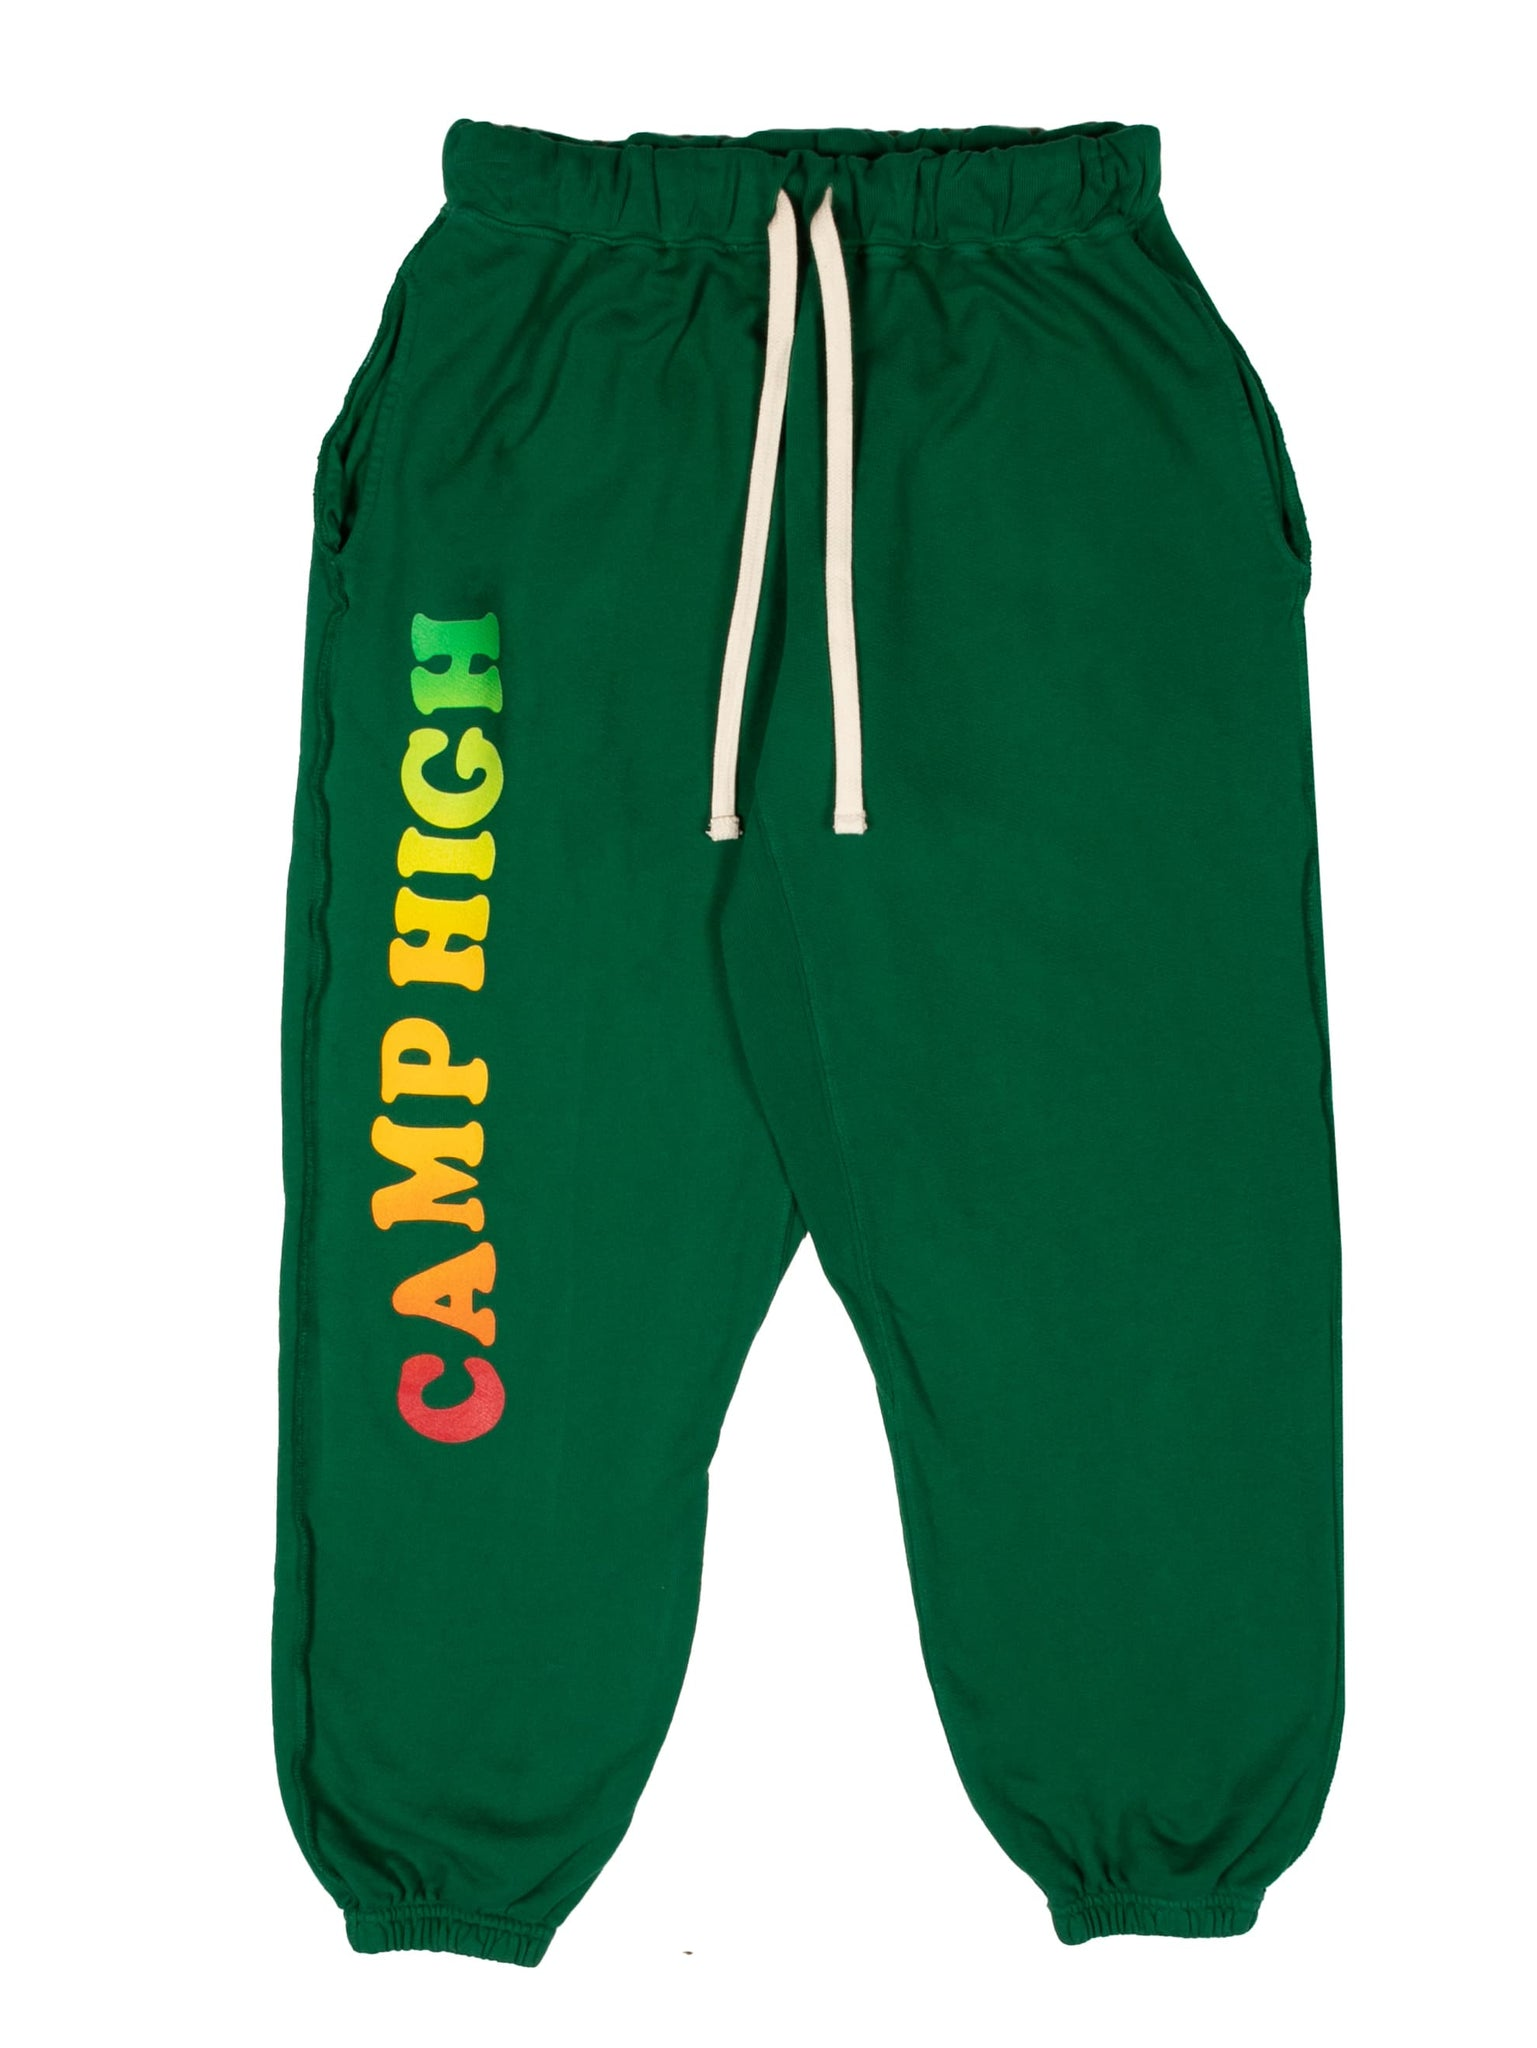 Camp High Green / Small Counselor Pant